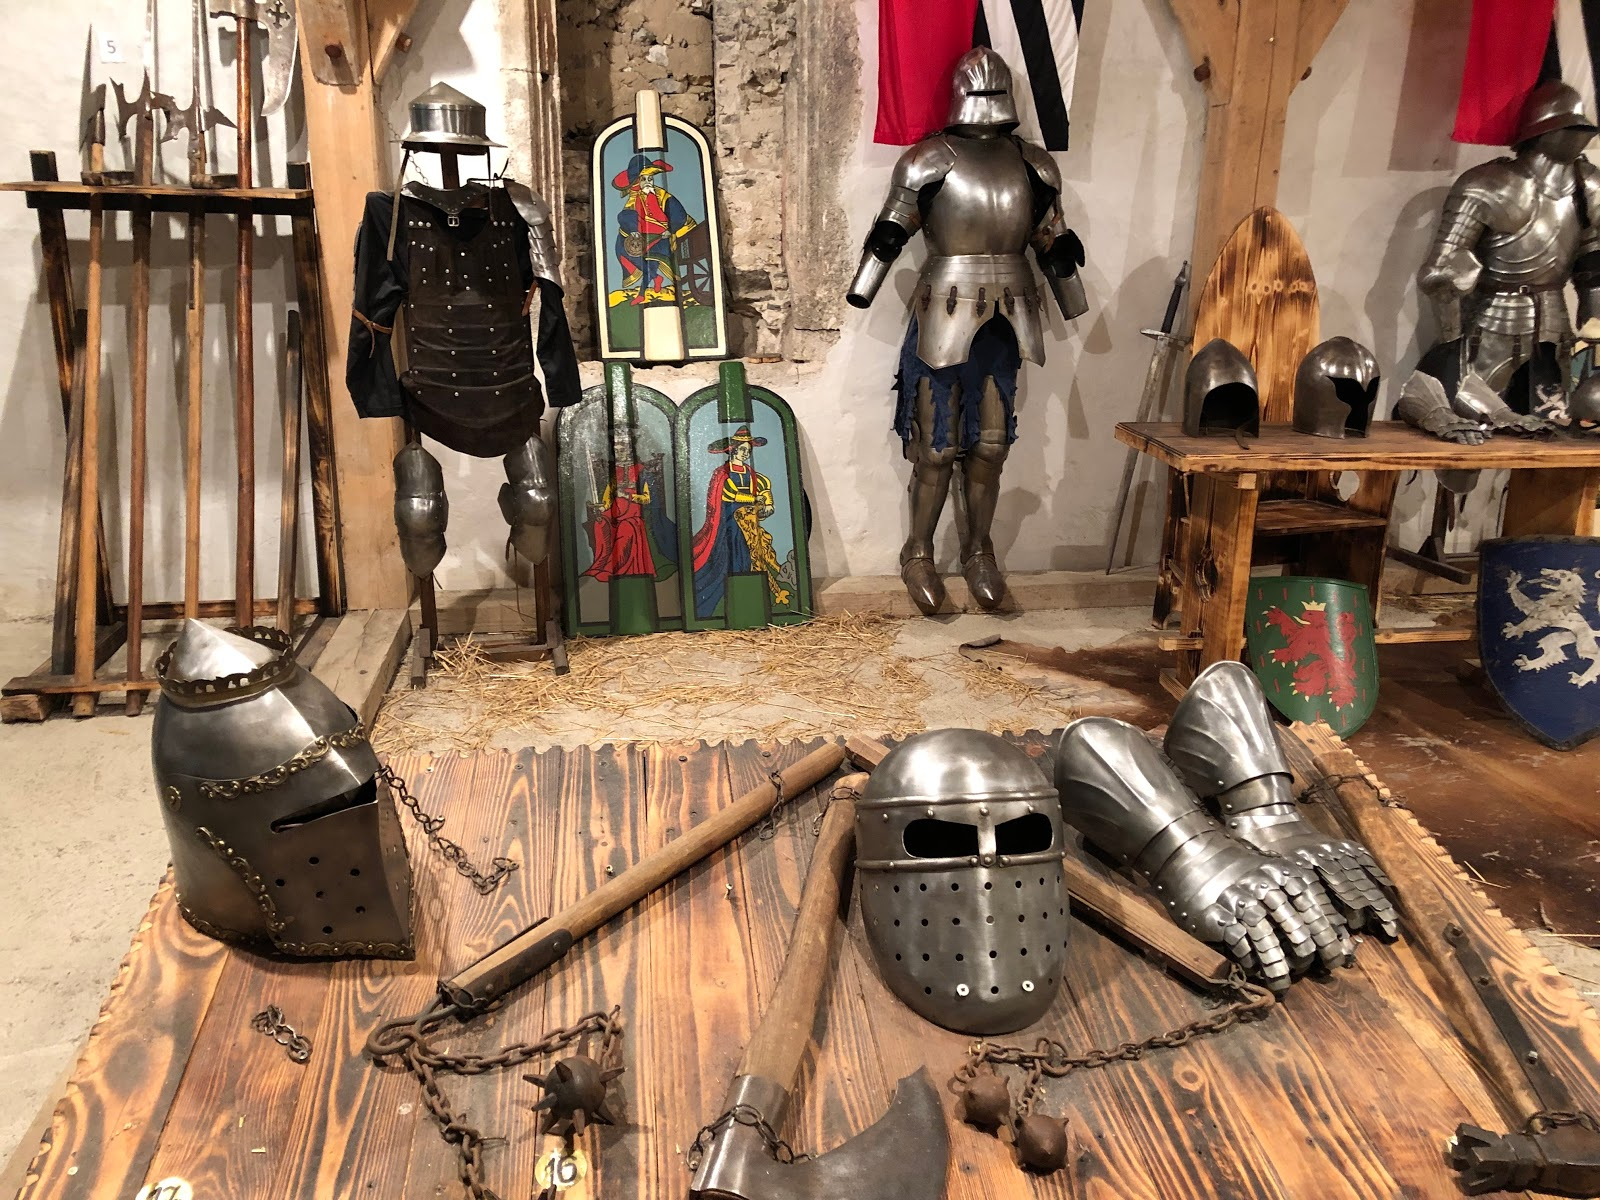 Weapons and Armors of the Knights in Predjama Castle